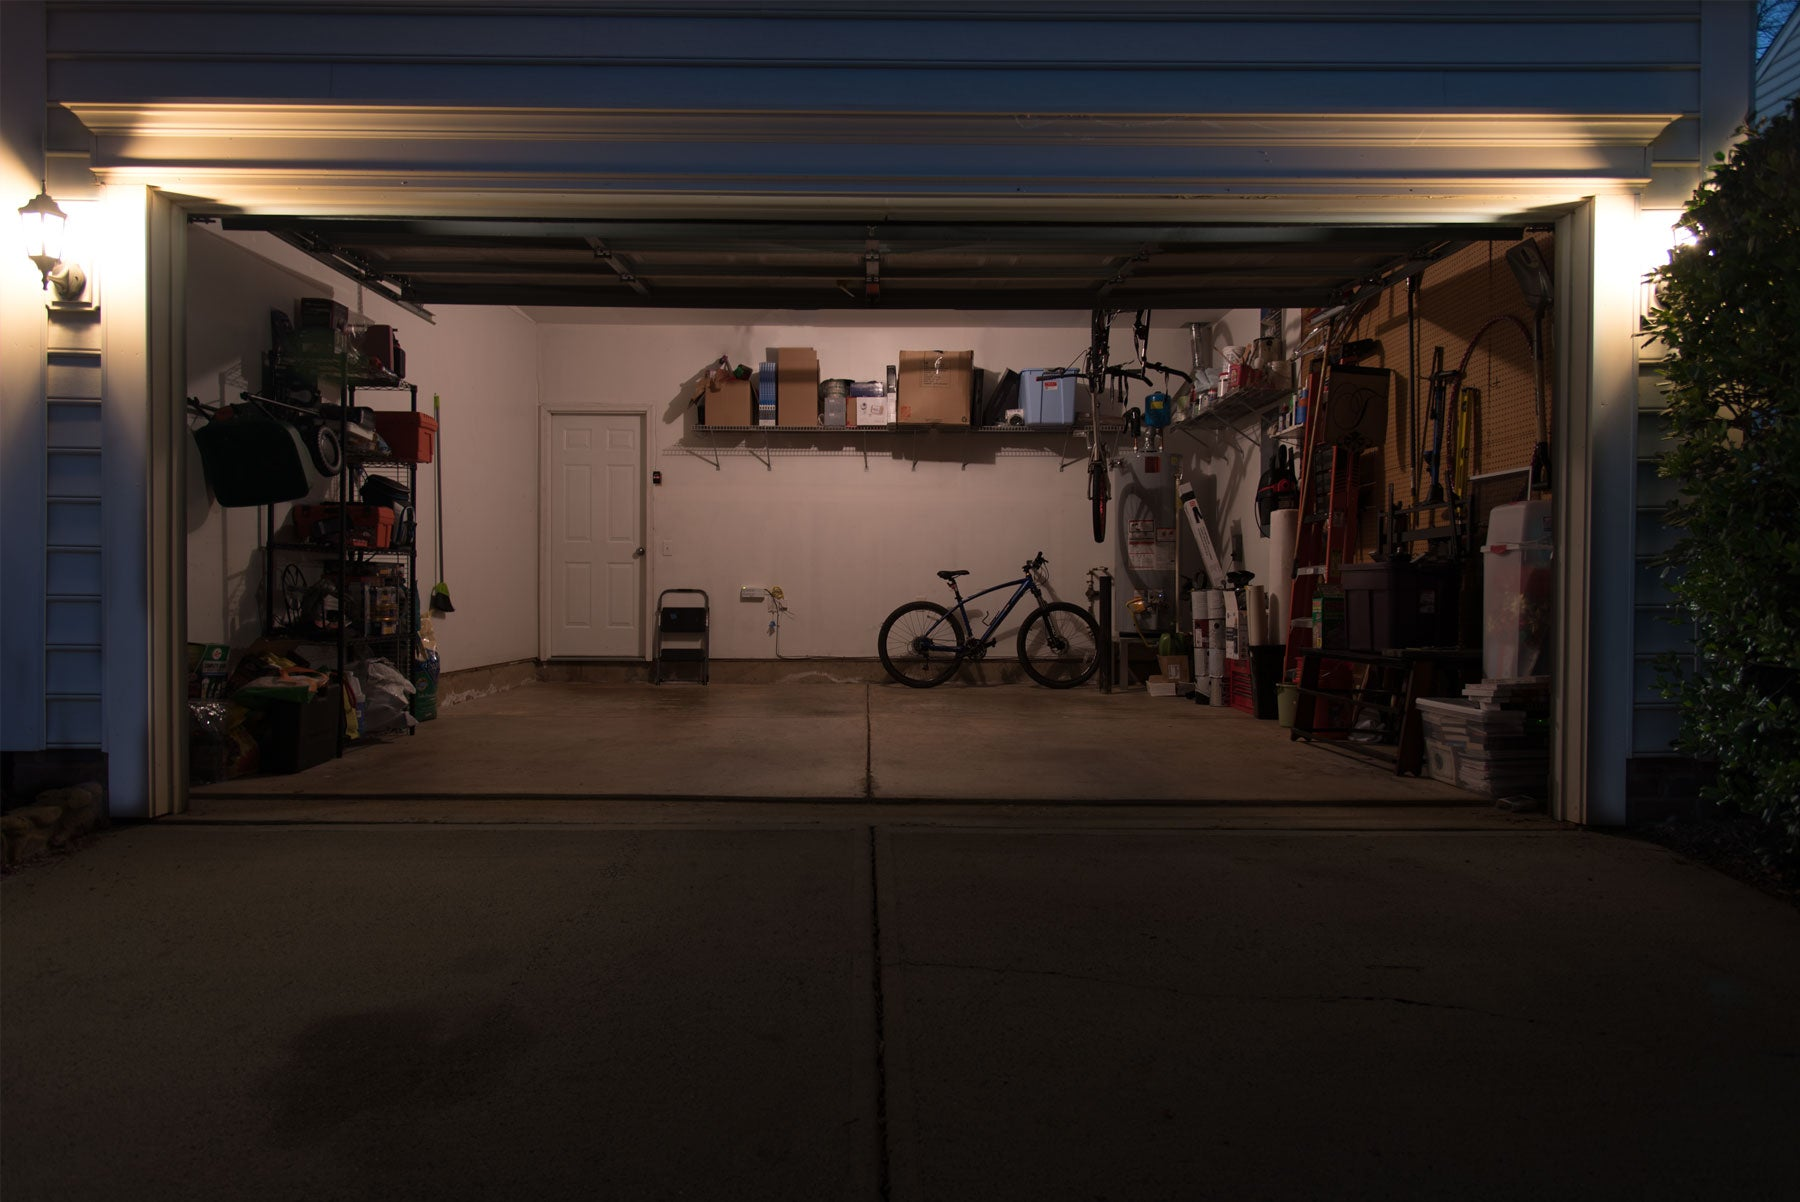 STKR Concepts TRiLIGHT compared to normal bulb in Garage - Incandescent Bulb View